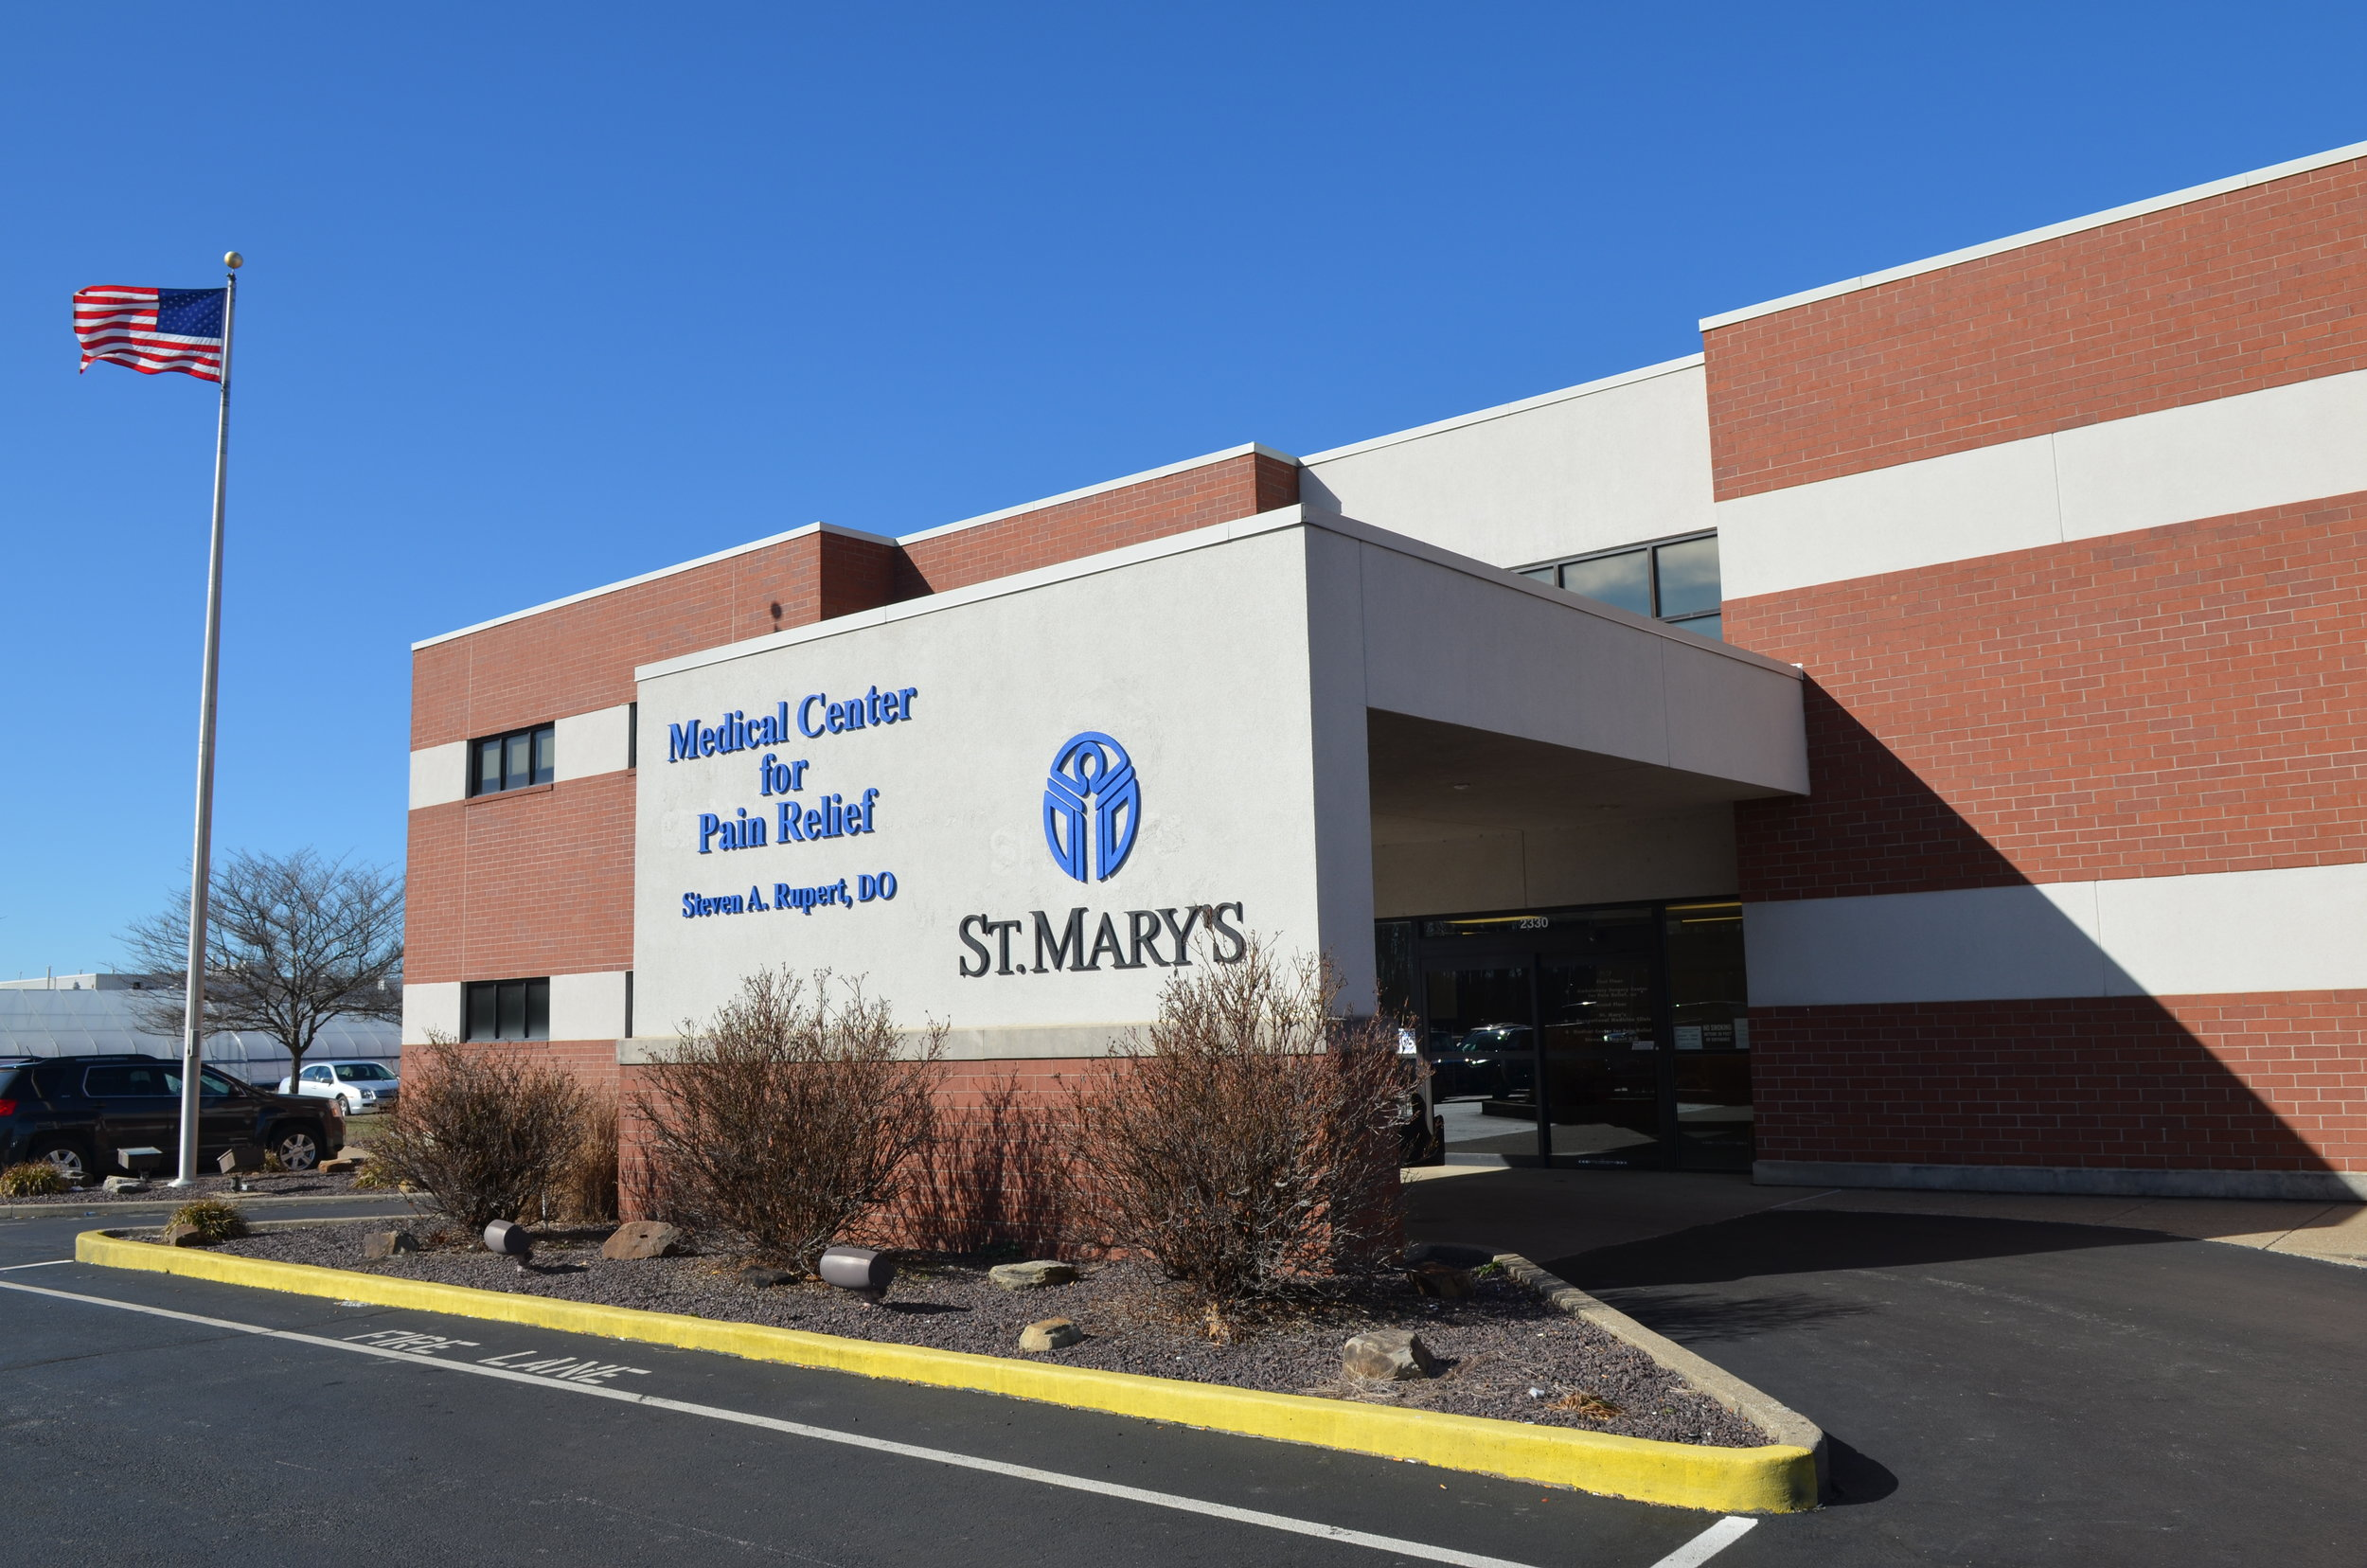 St. Mary's Medical Center for Pain Relief